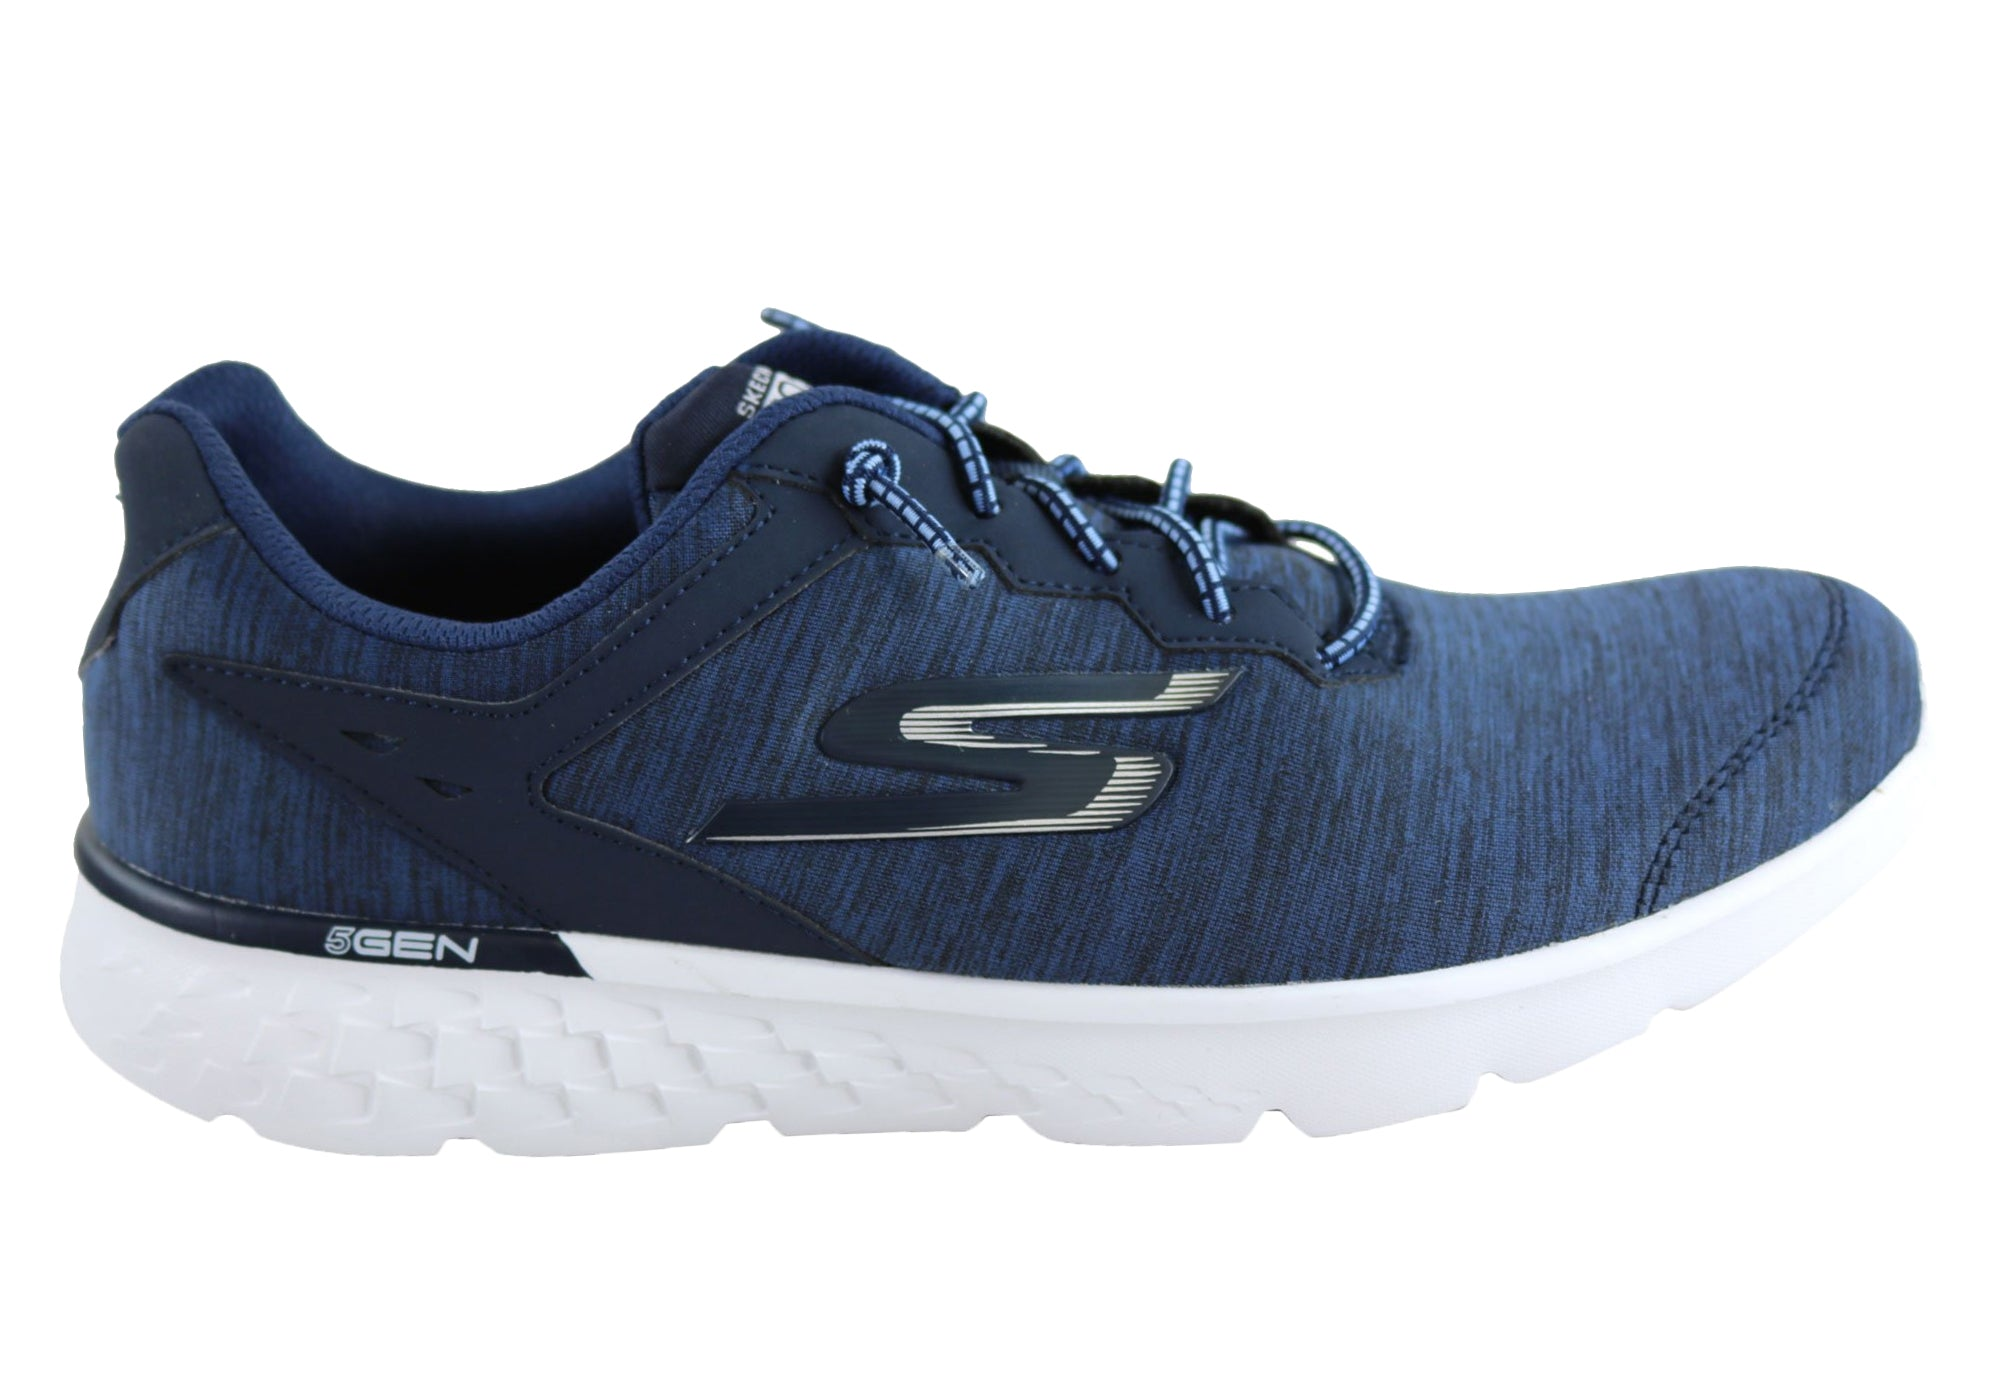 250e5c16e61 Home Skechers Go Run 400 Swiftly Womens Comfortable Athletic Shoes. Black   ...